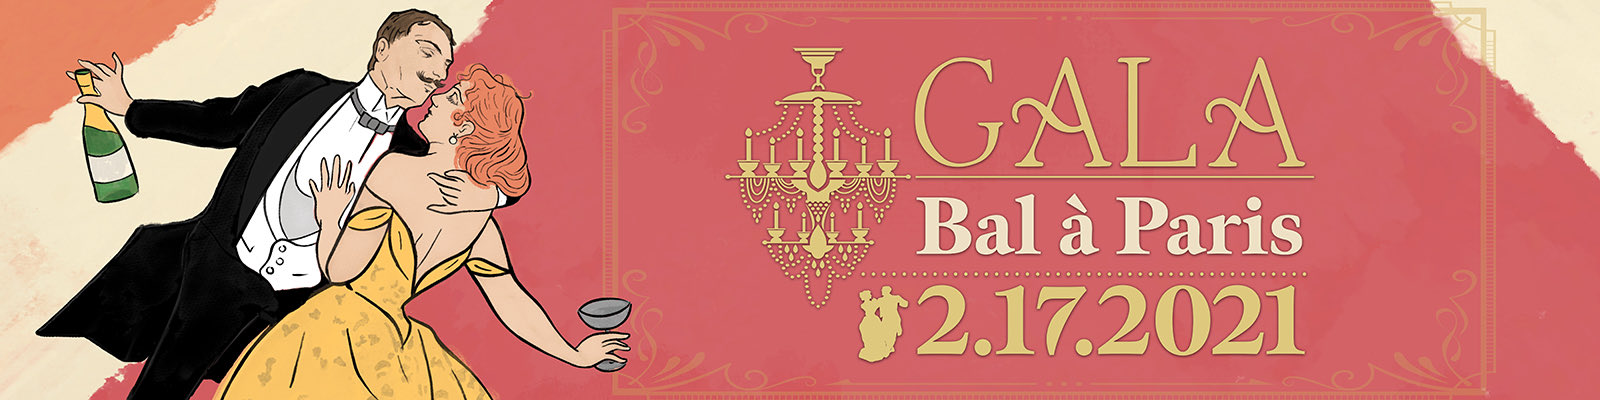 OPRA Gala 2021 SaveTheDate web banner FINAL4